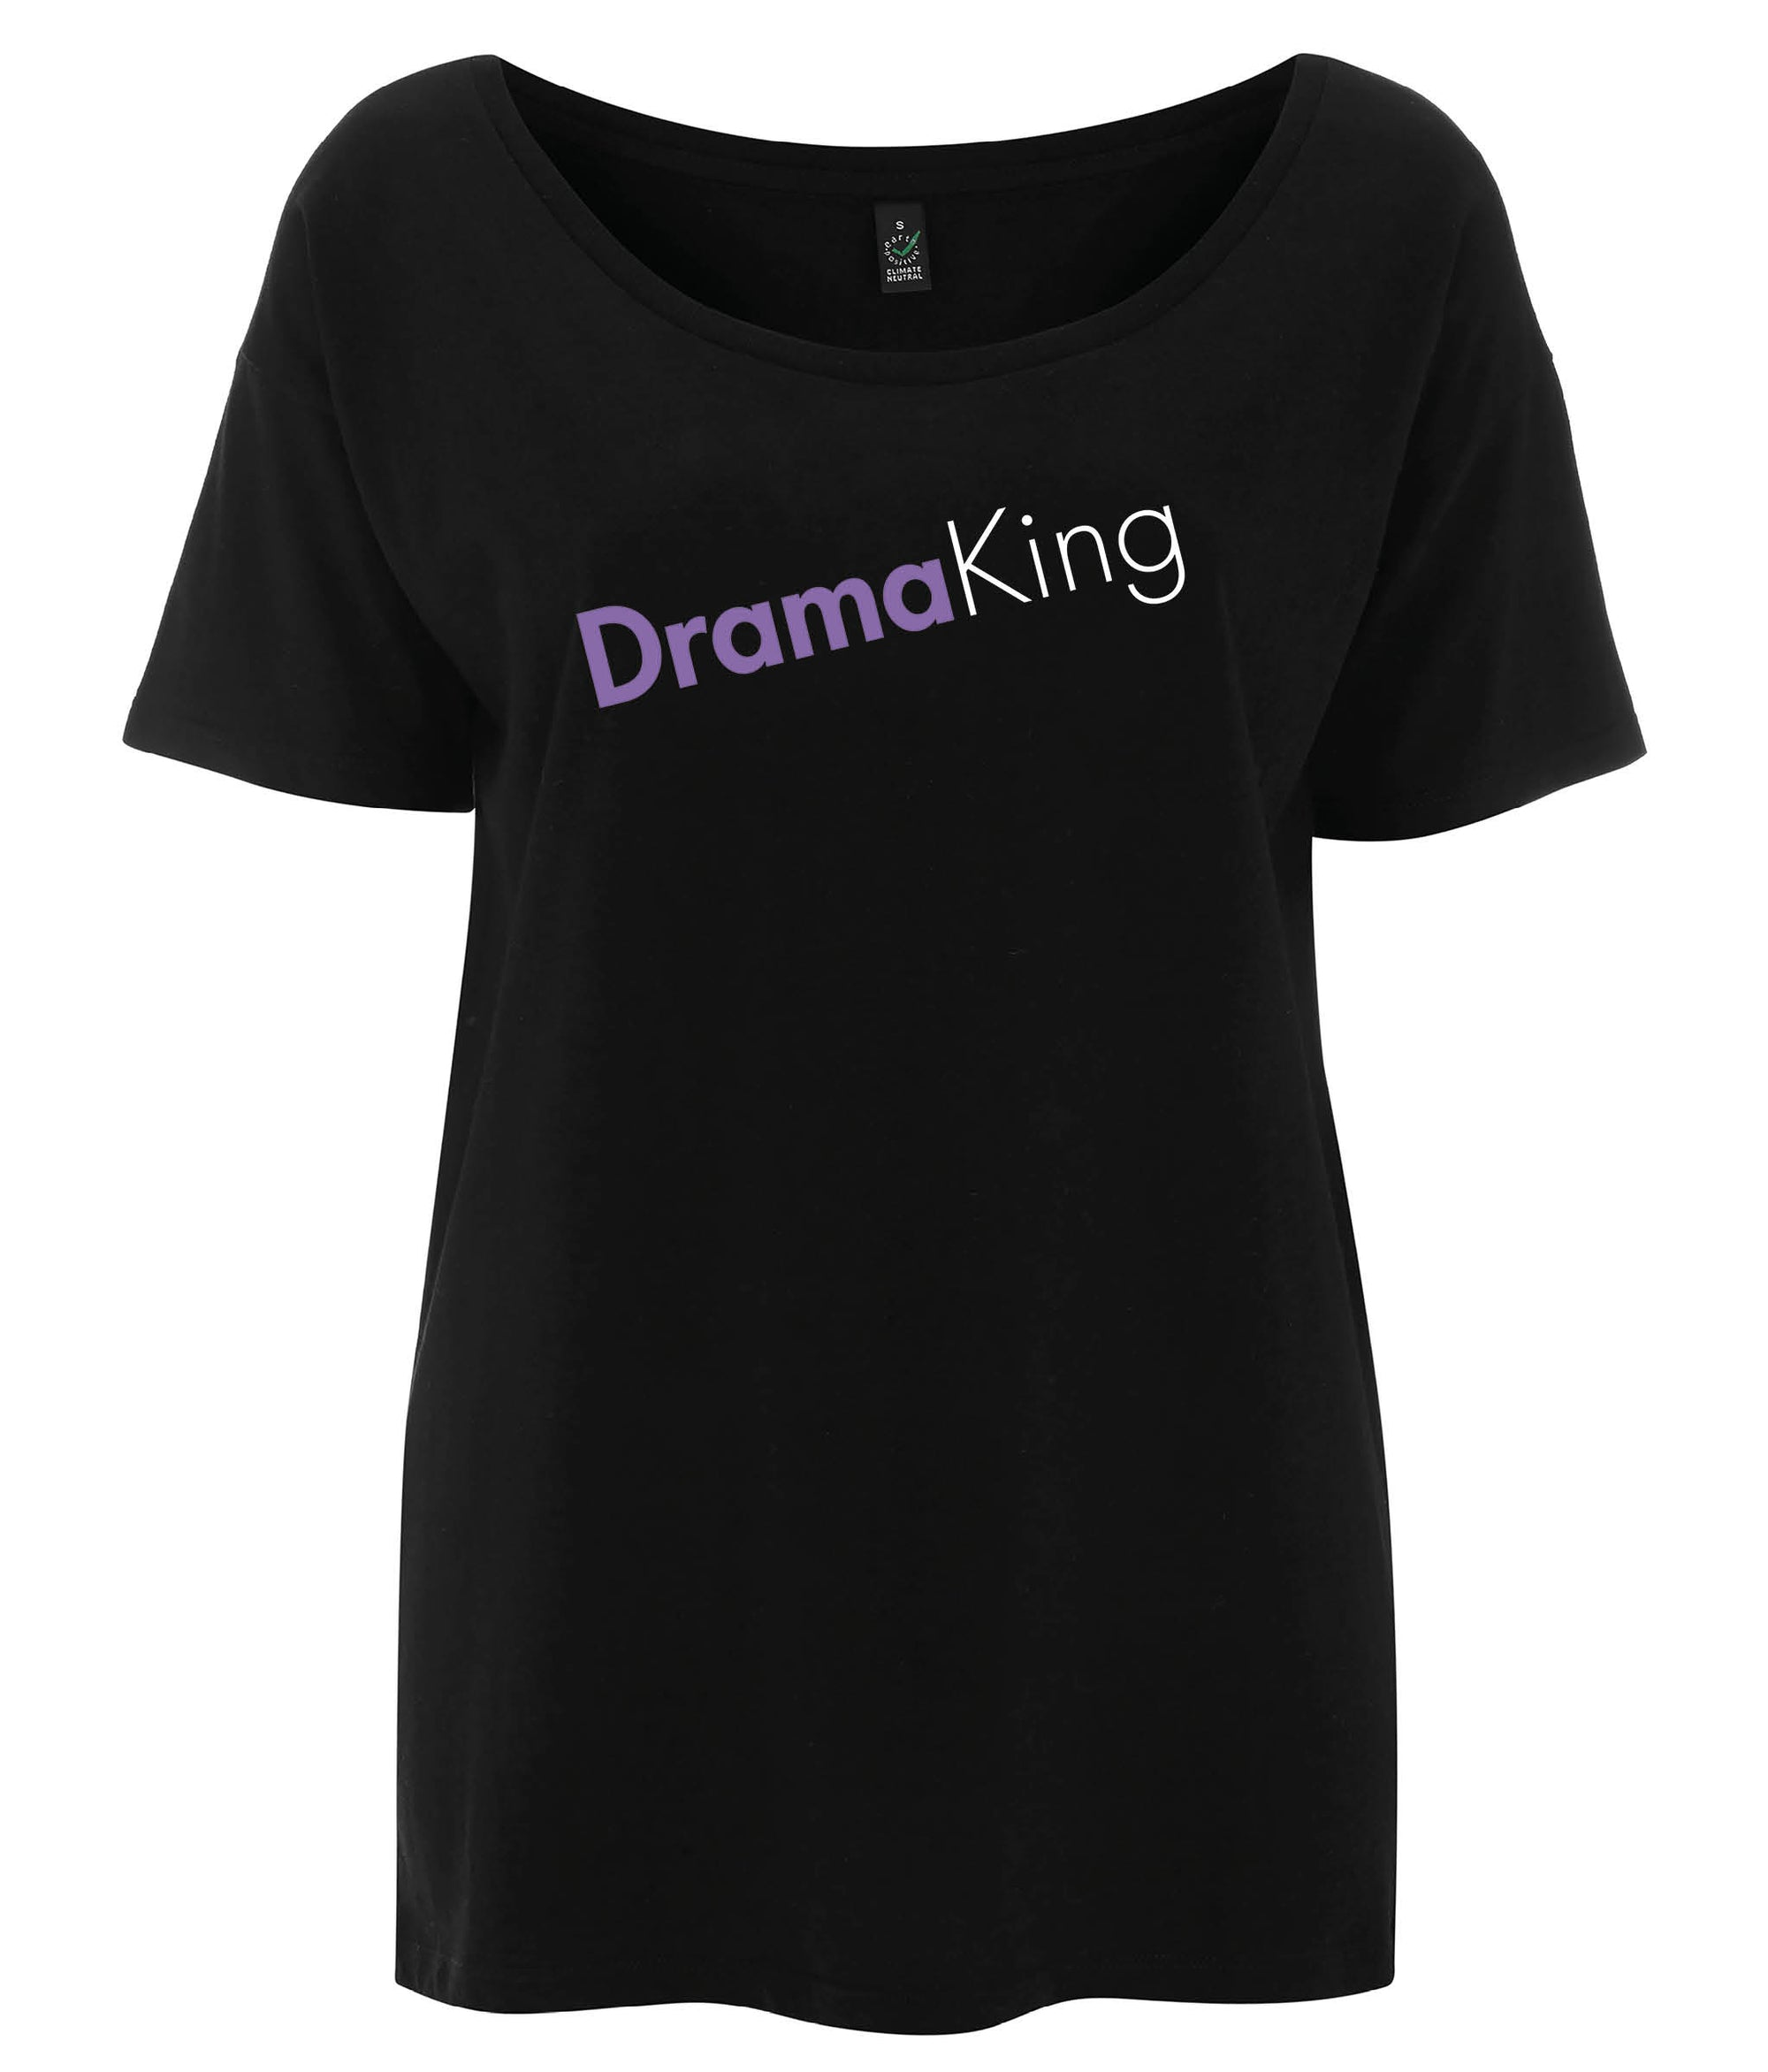 Drama King Tencel Blend Oversized Feminist T Shirt Black